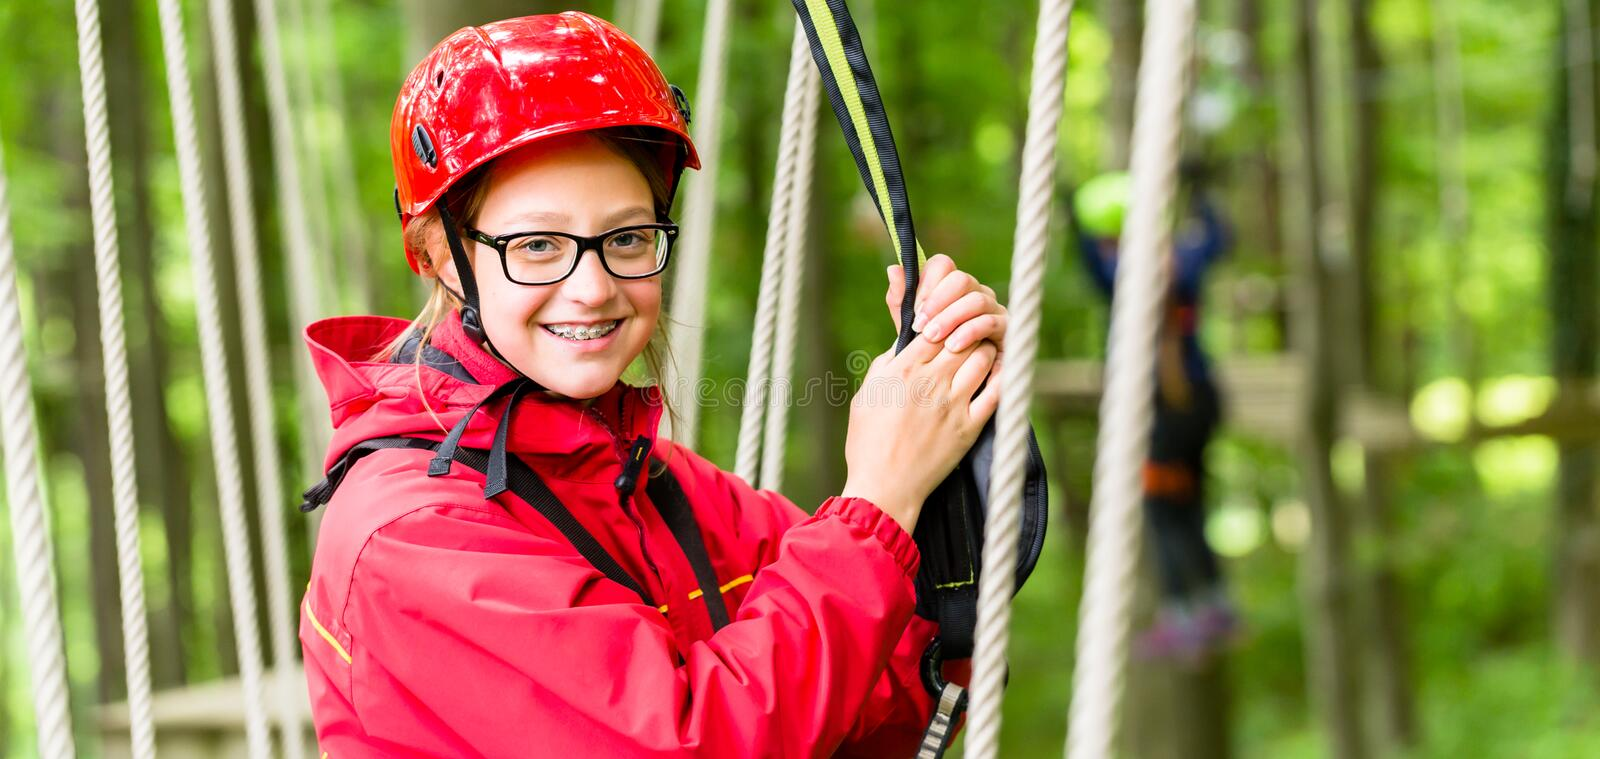 Girl roping up in high rope course. Exercising the necessary safety precautions royalty free stock photo